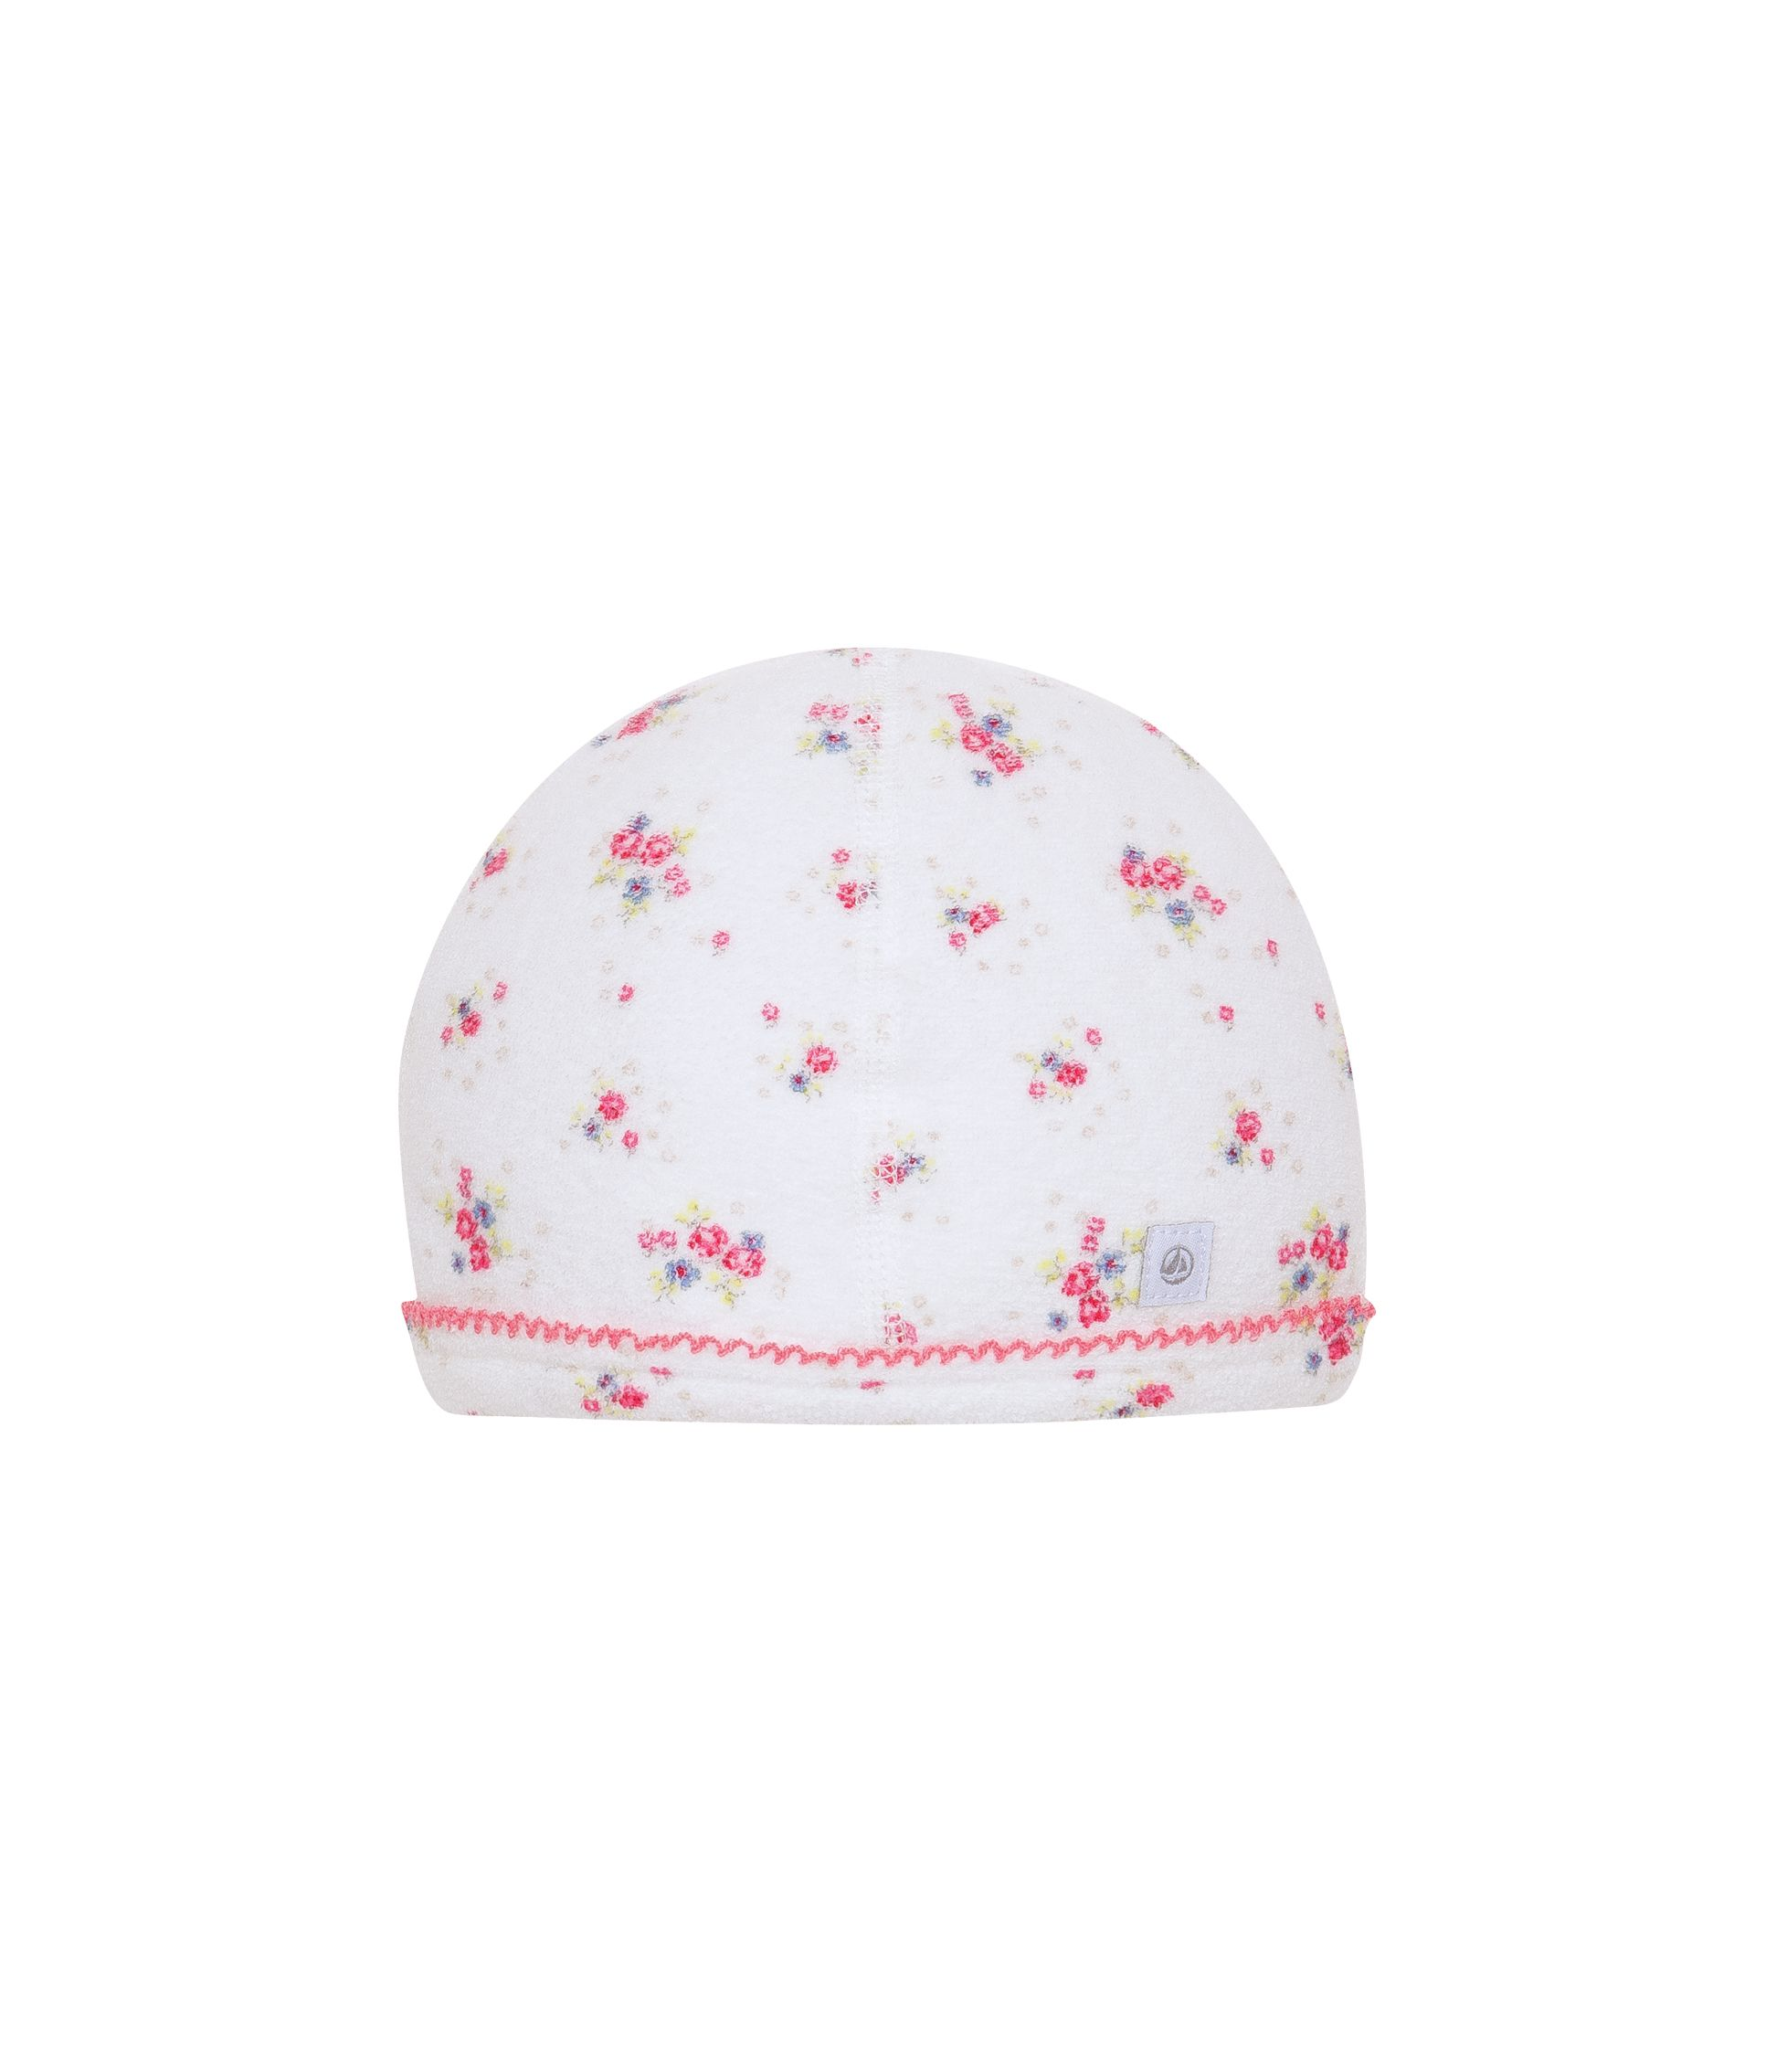 Baby girls hat